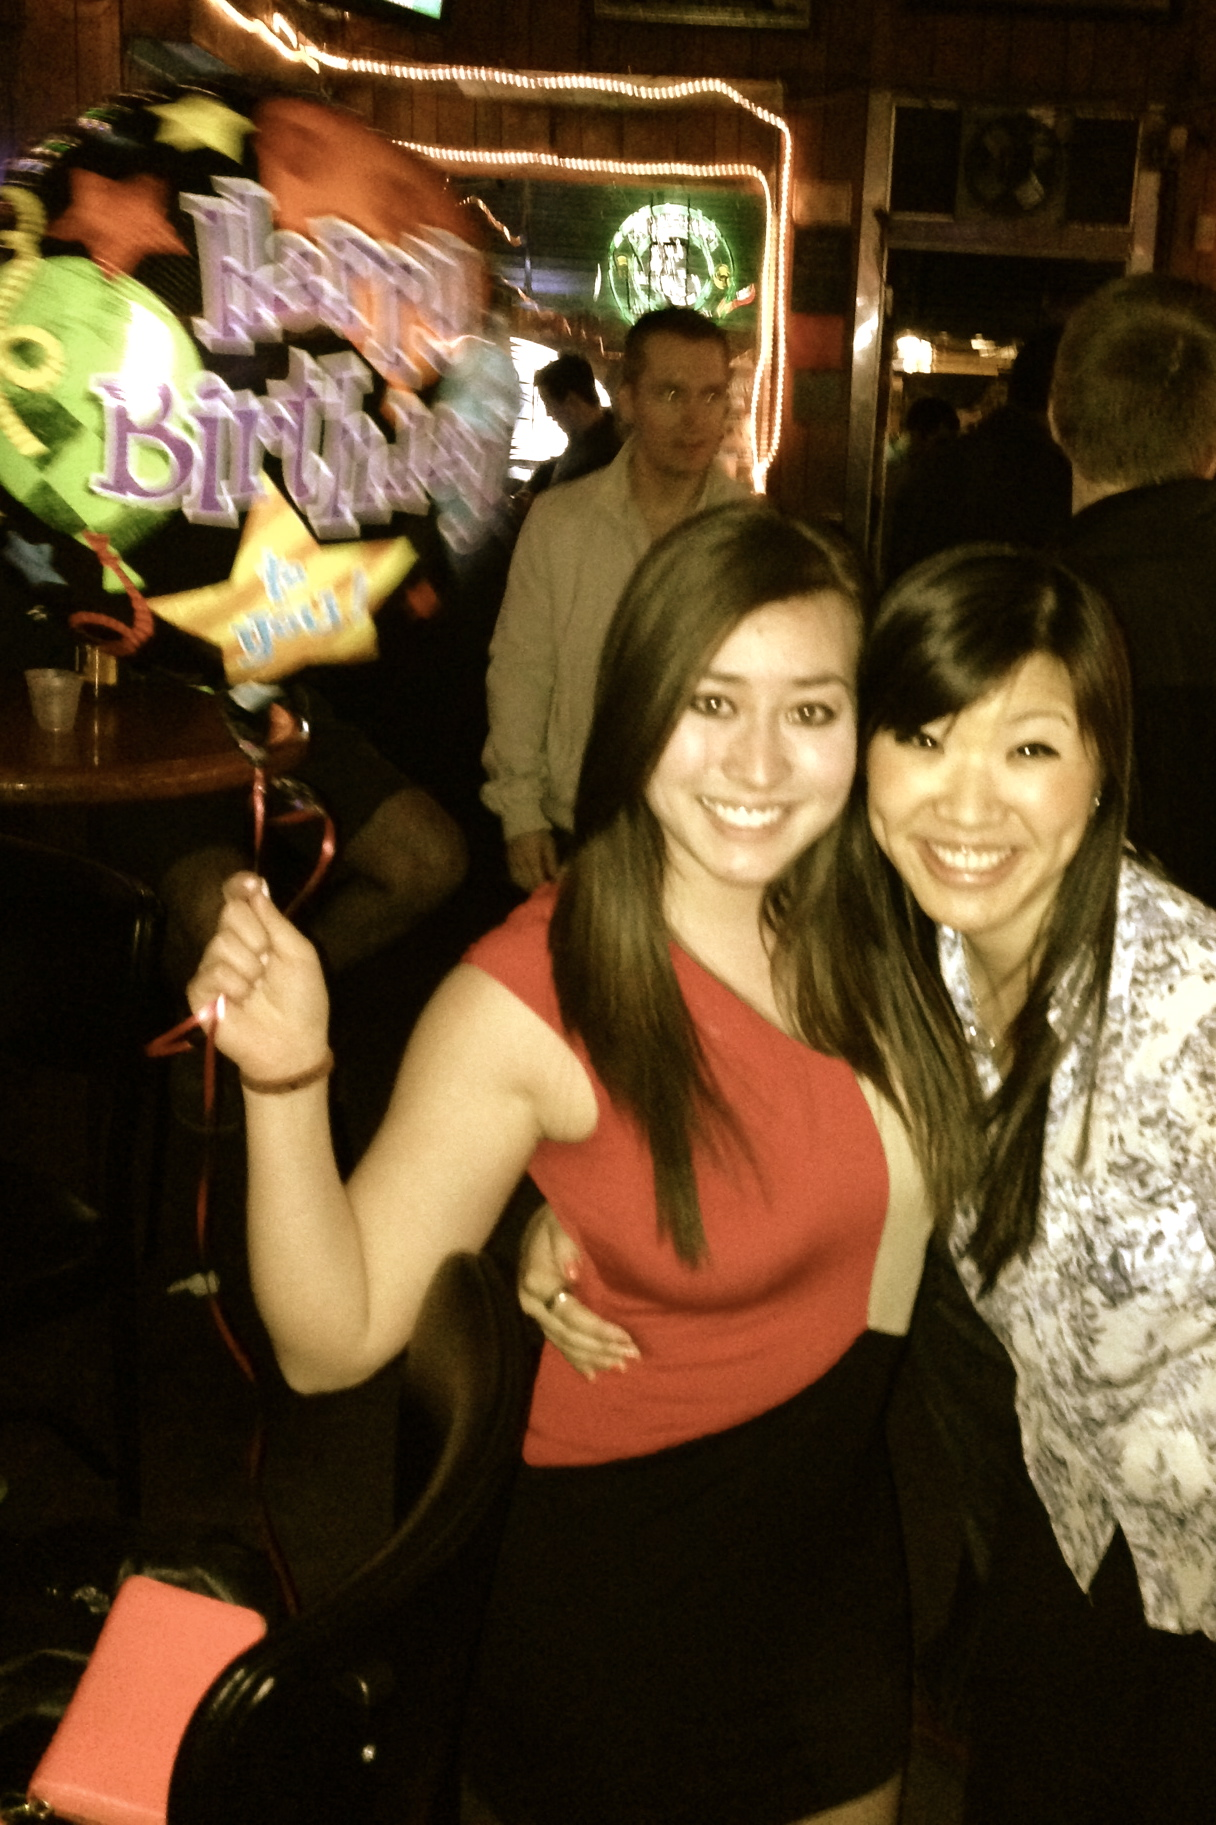 Hey thanks for the balloon! Also. Check out that caveman/bear hybrid in the corner of the bar.